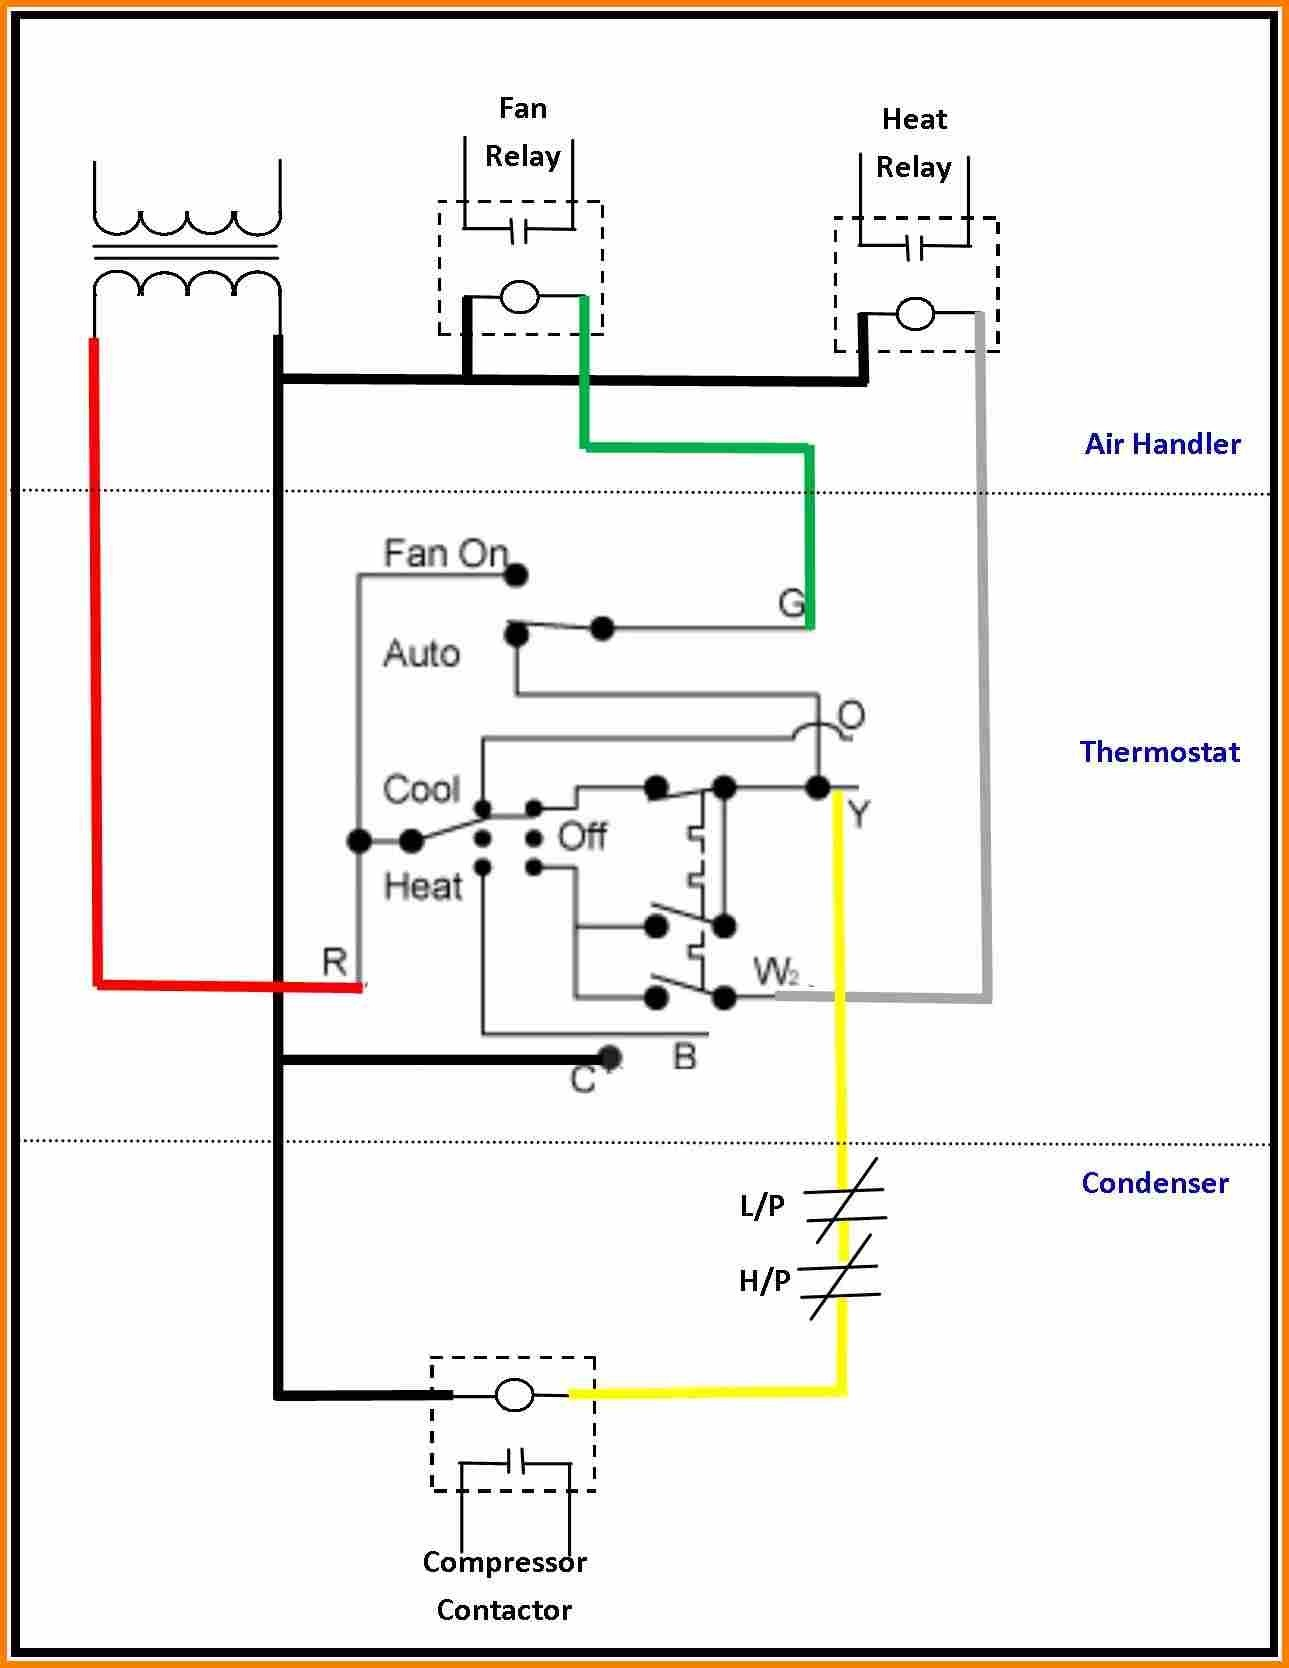 2 Wire thermostat Wiring Diagram thermostat Wiring Diagram Wiring Diagrams Of 2 Wire thermostat Wiring Diagram